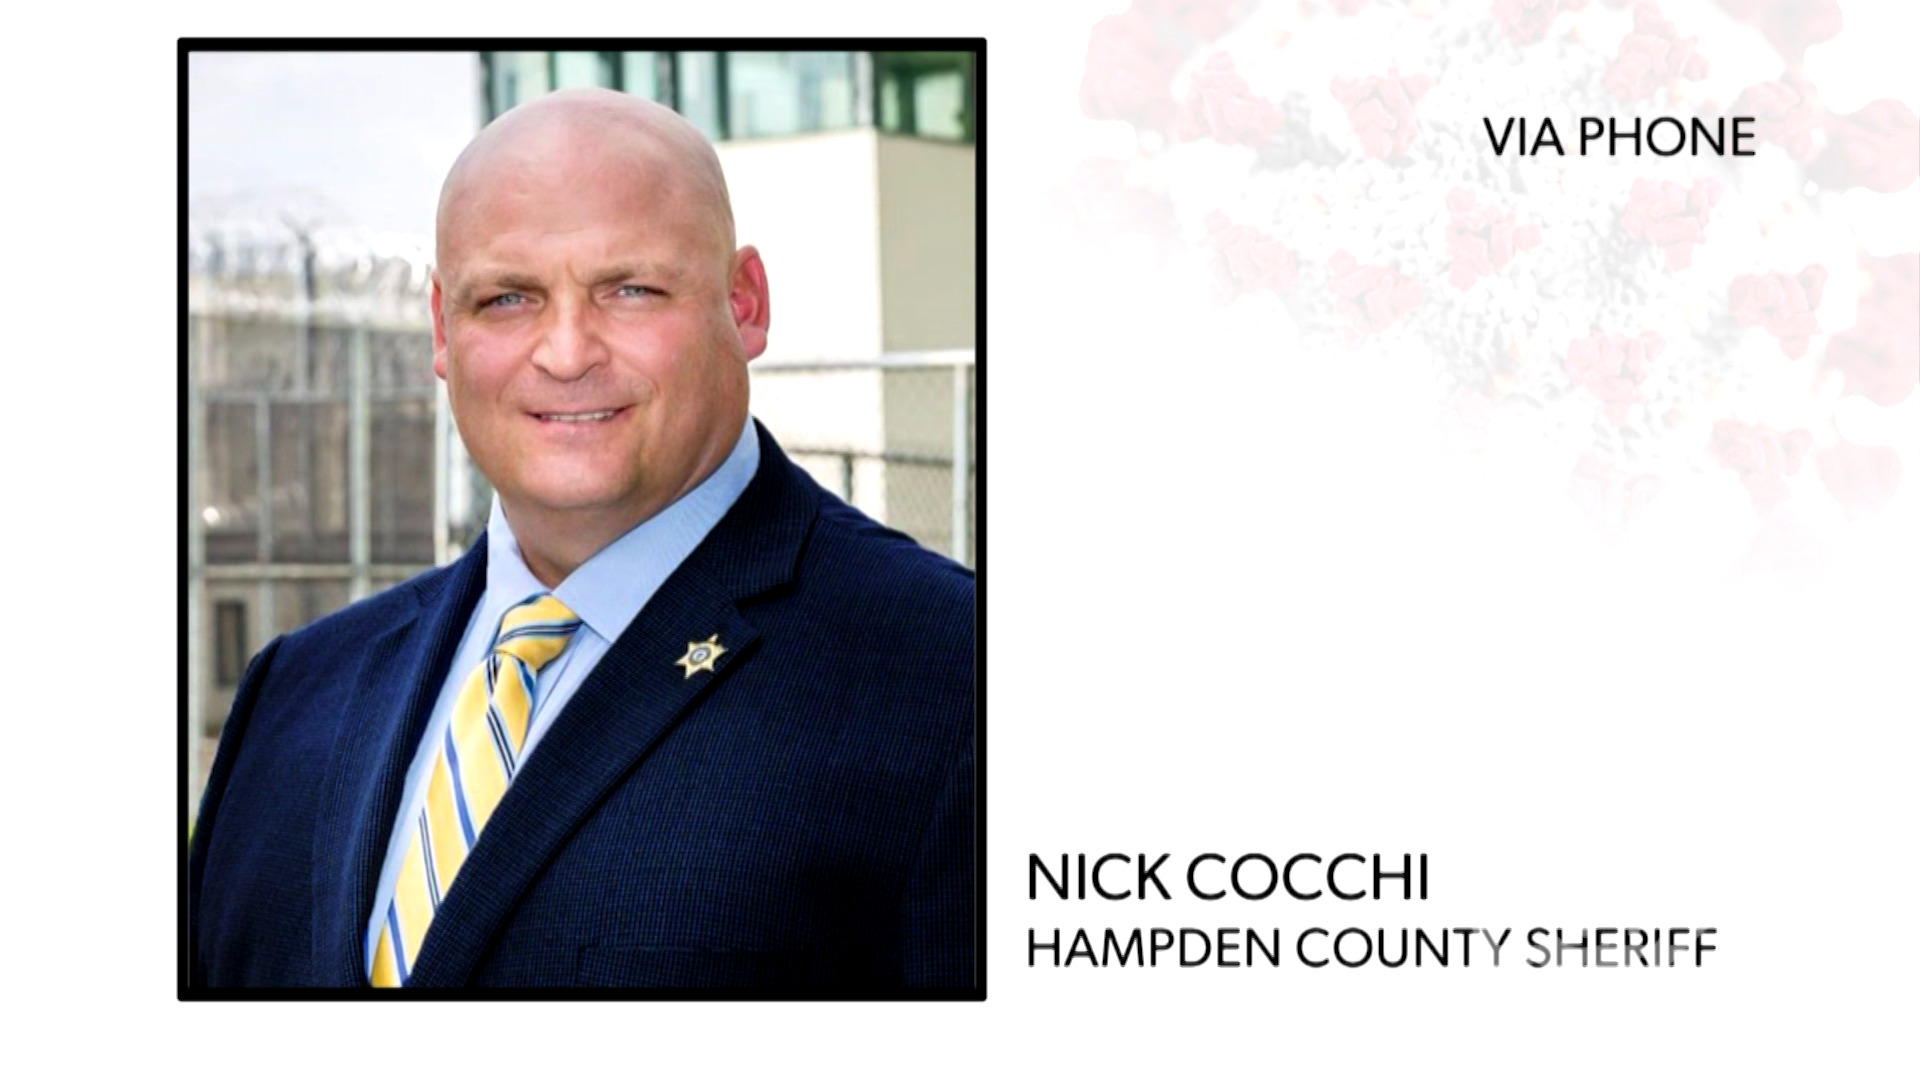 WATCH: Hampden County Sheriff Nick Cocchi explains the changes he's made to protect inmates from COVID-19 and why early release is not part of his plan.